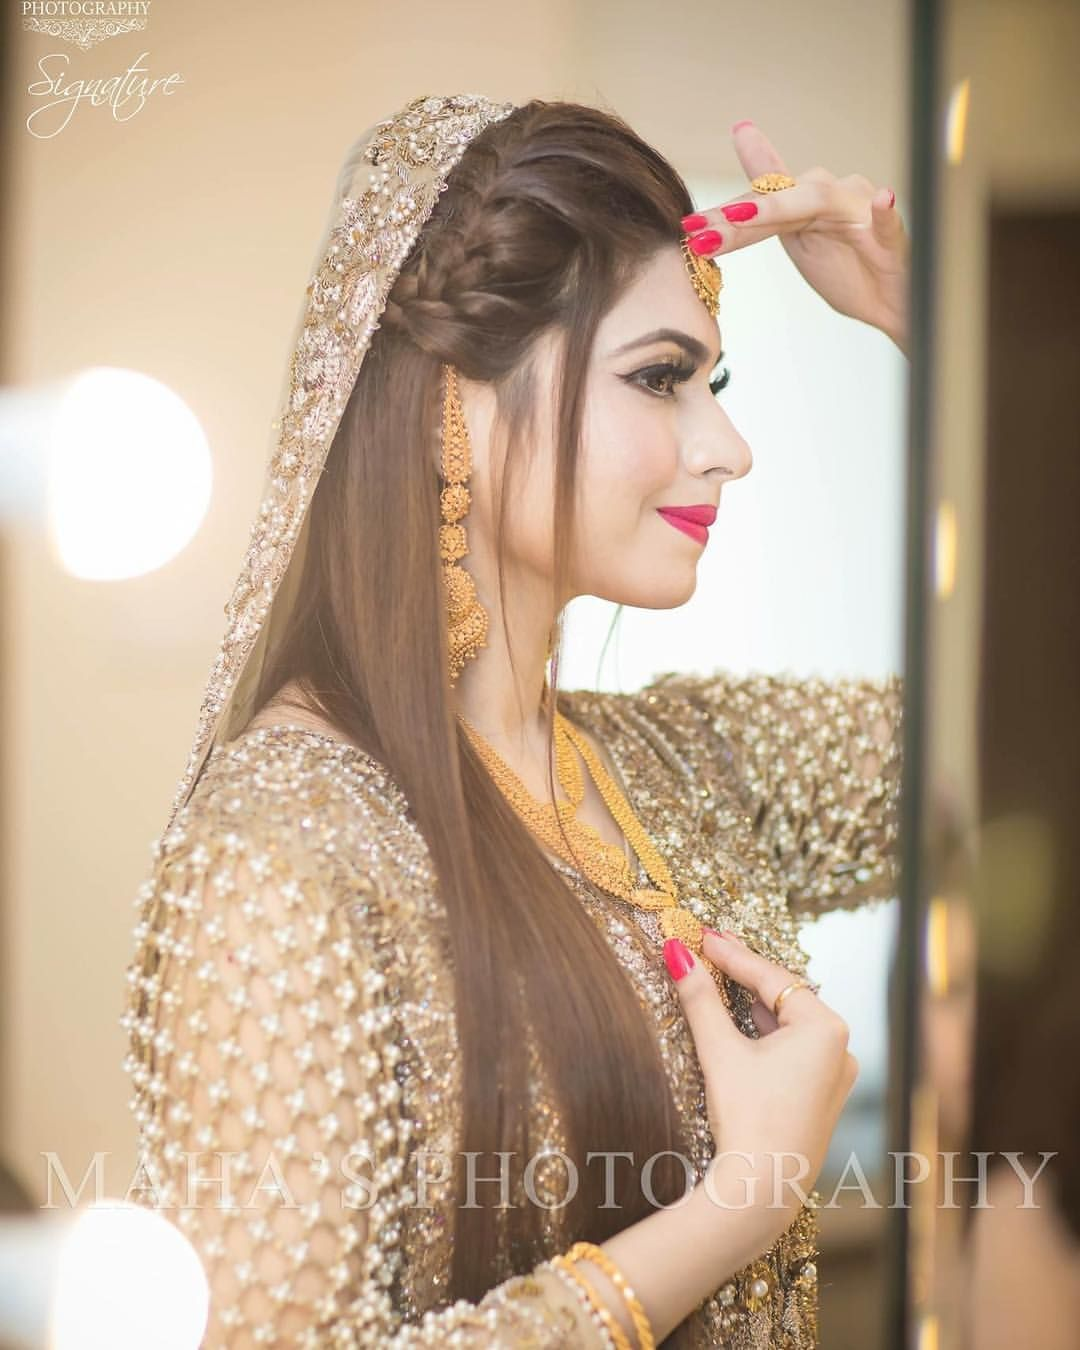 pin by aisha khan on make up looks in 2019 | bridal style